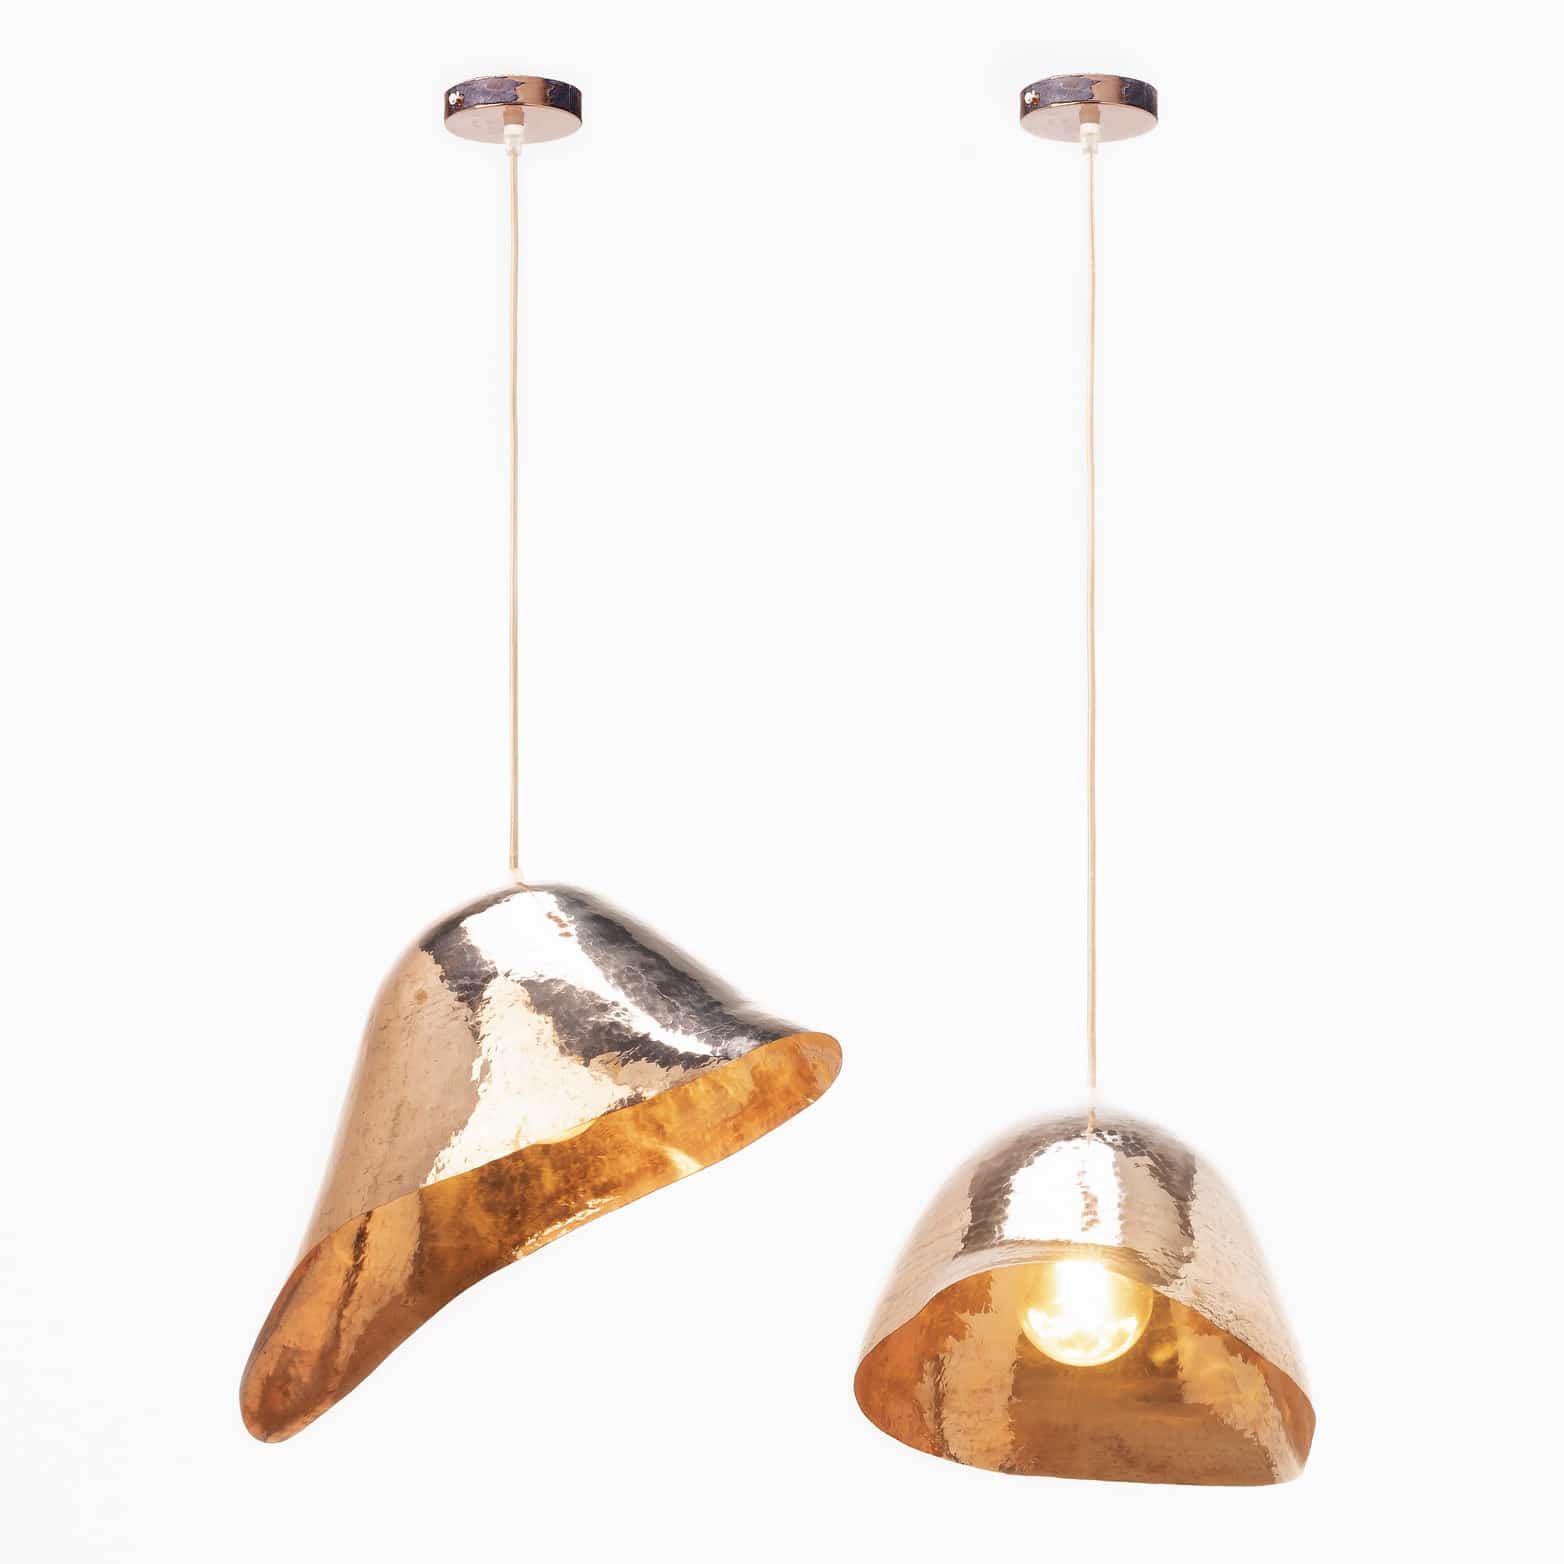 Cucharros Luminaires Like Cork